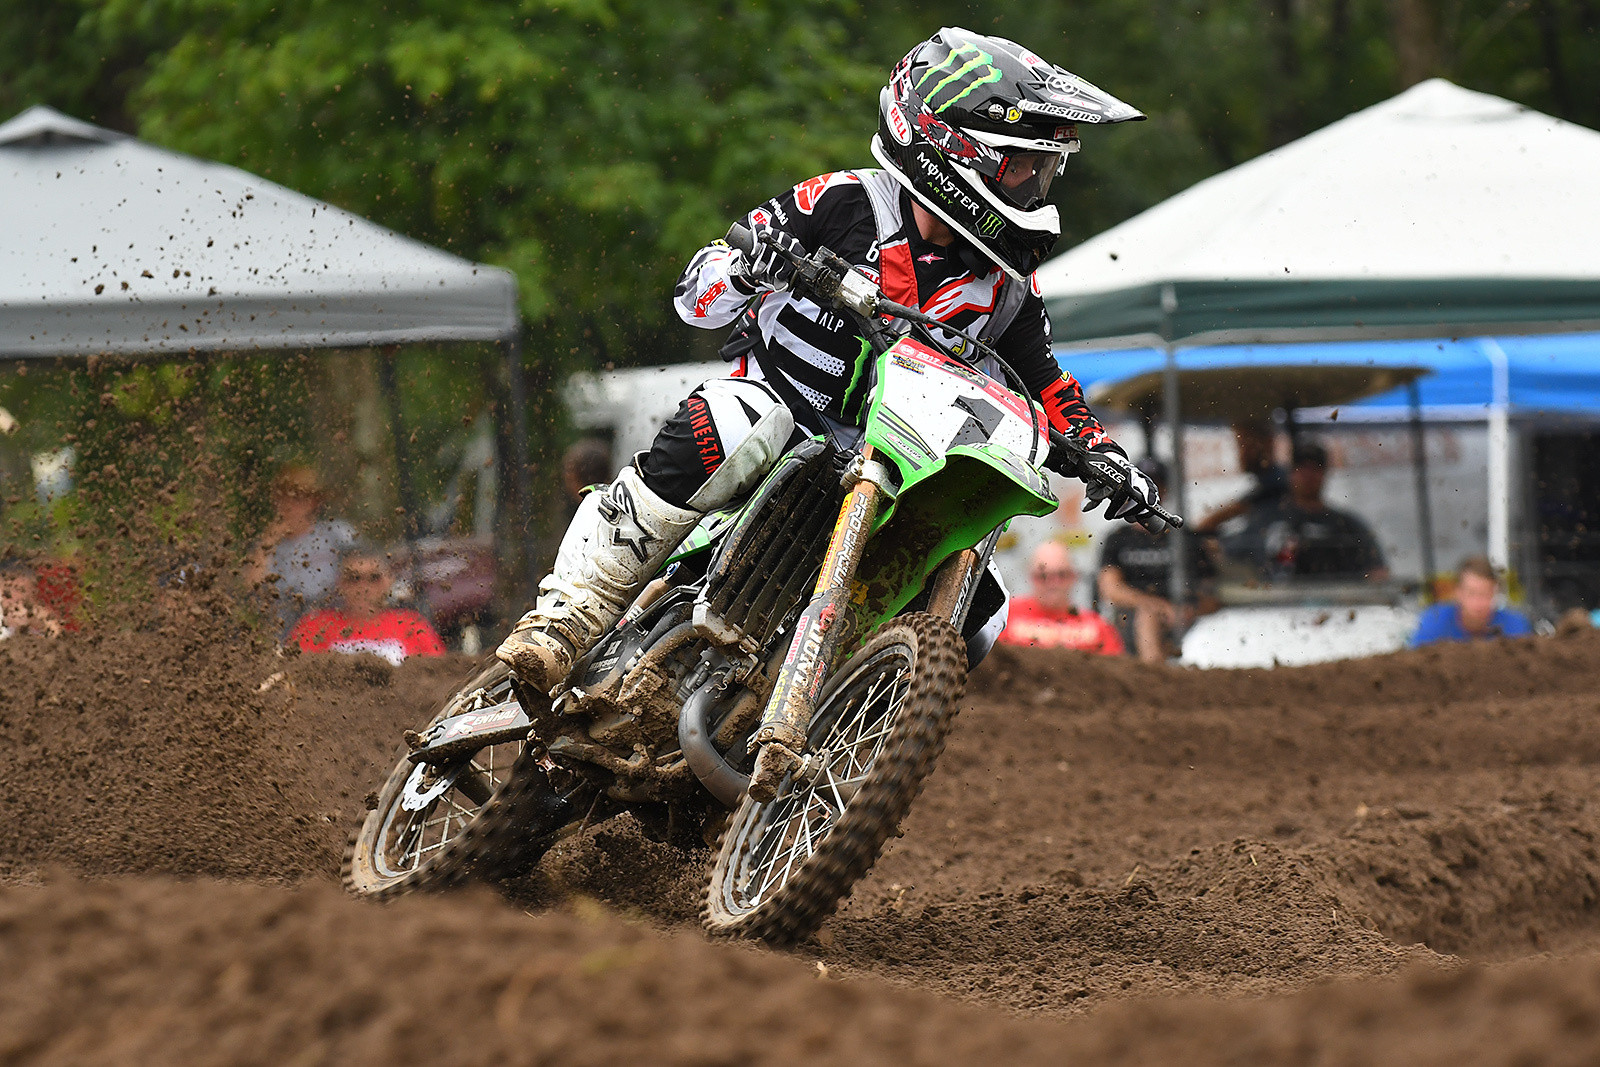 Jett Reynolds already has a record; he's swept his classes the last four years. He started 2017 with two moto wins on Tuesday and could make it five in a row.